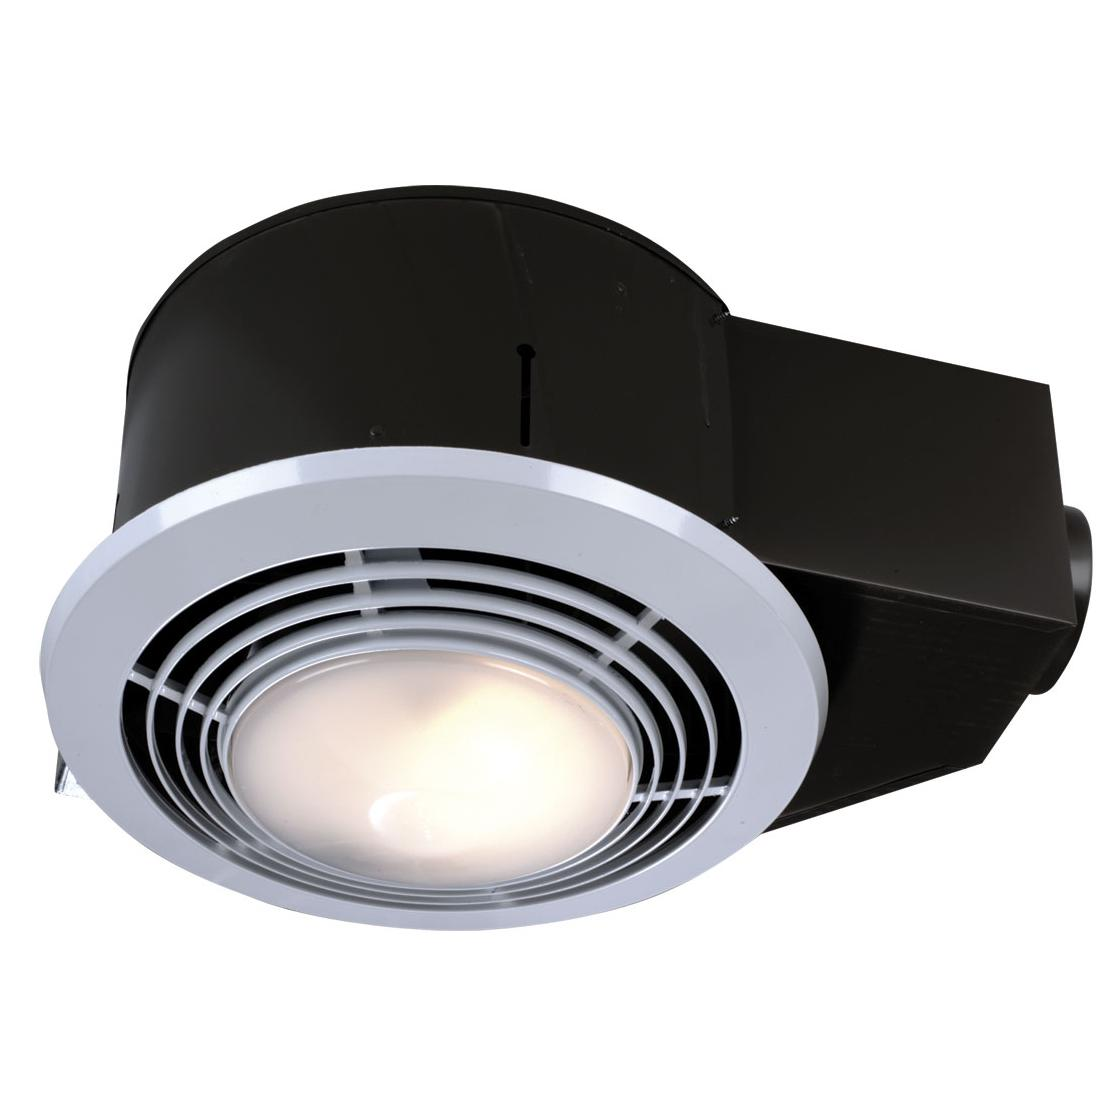 NuTone QTWH Combination FanHeaterLightNight Light CFM - Kitchen ceiling exhaust fan with light